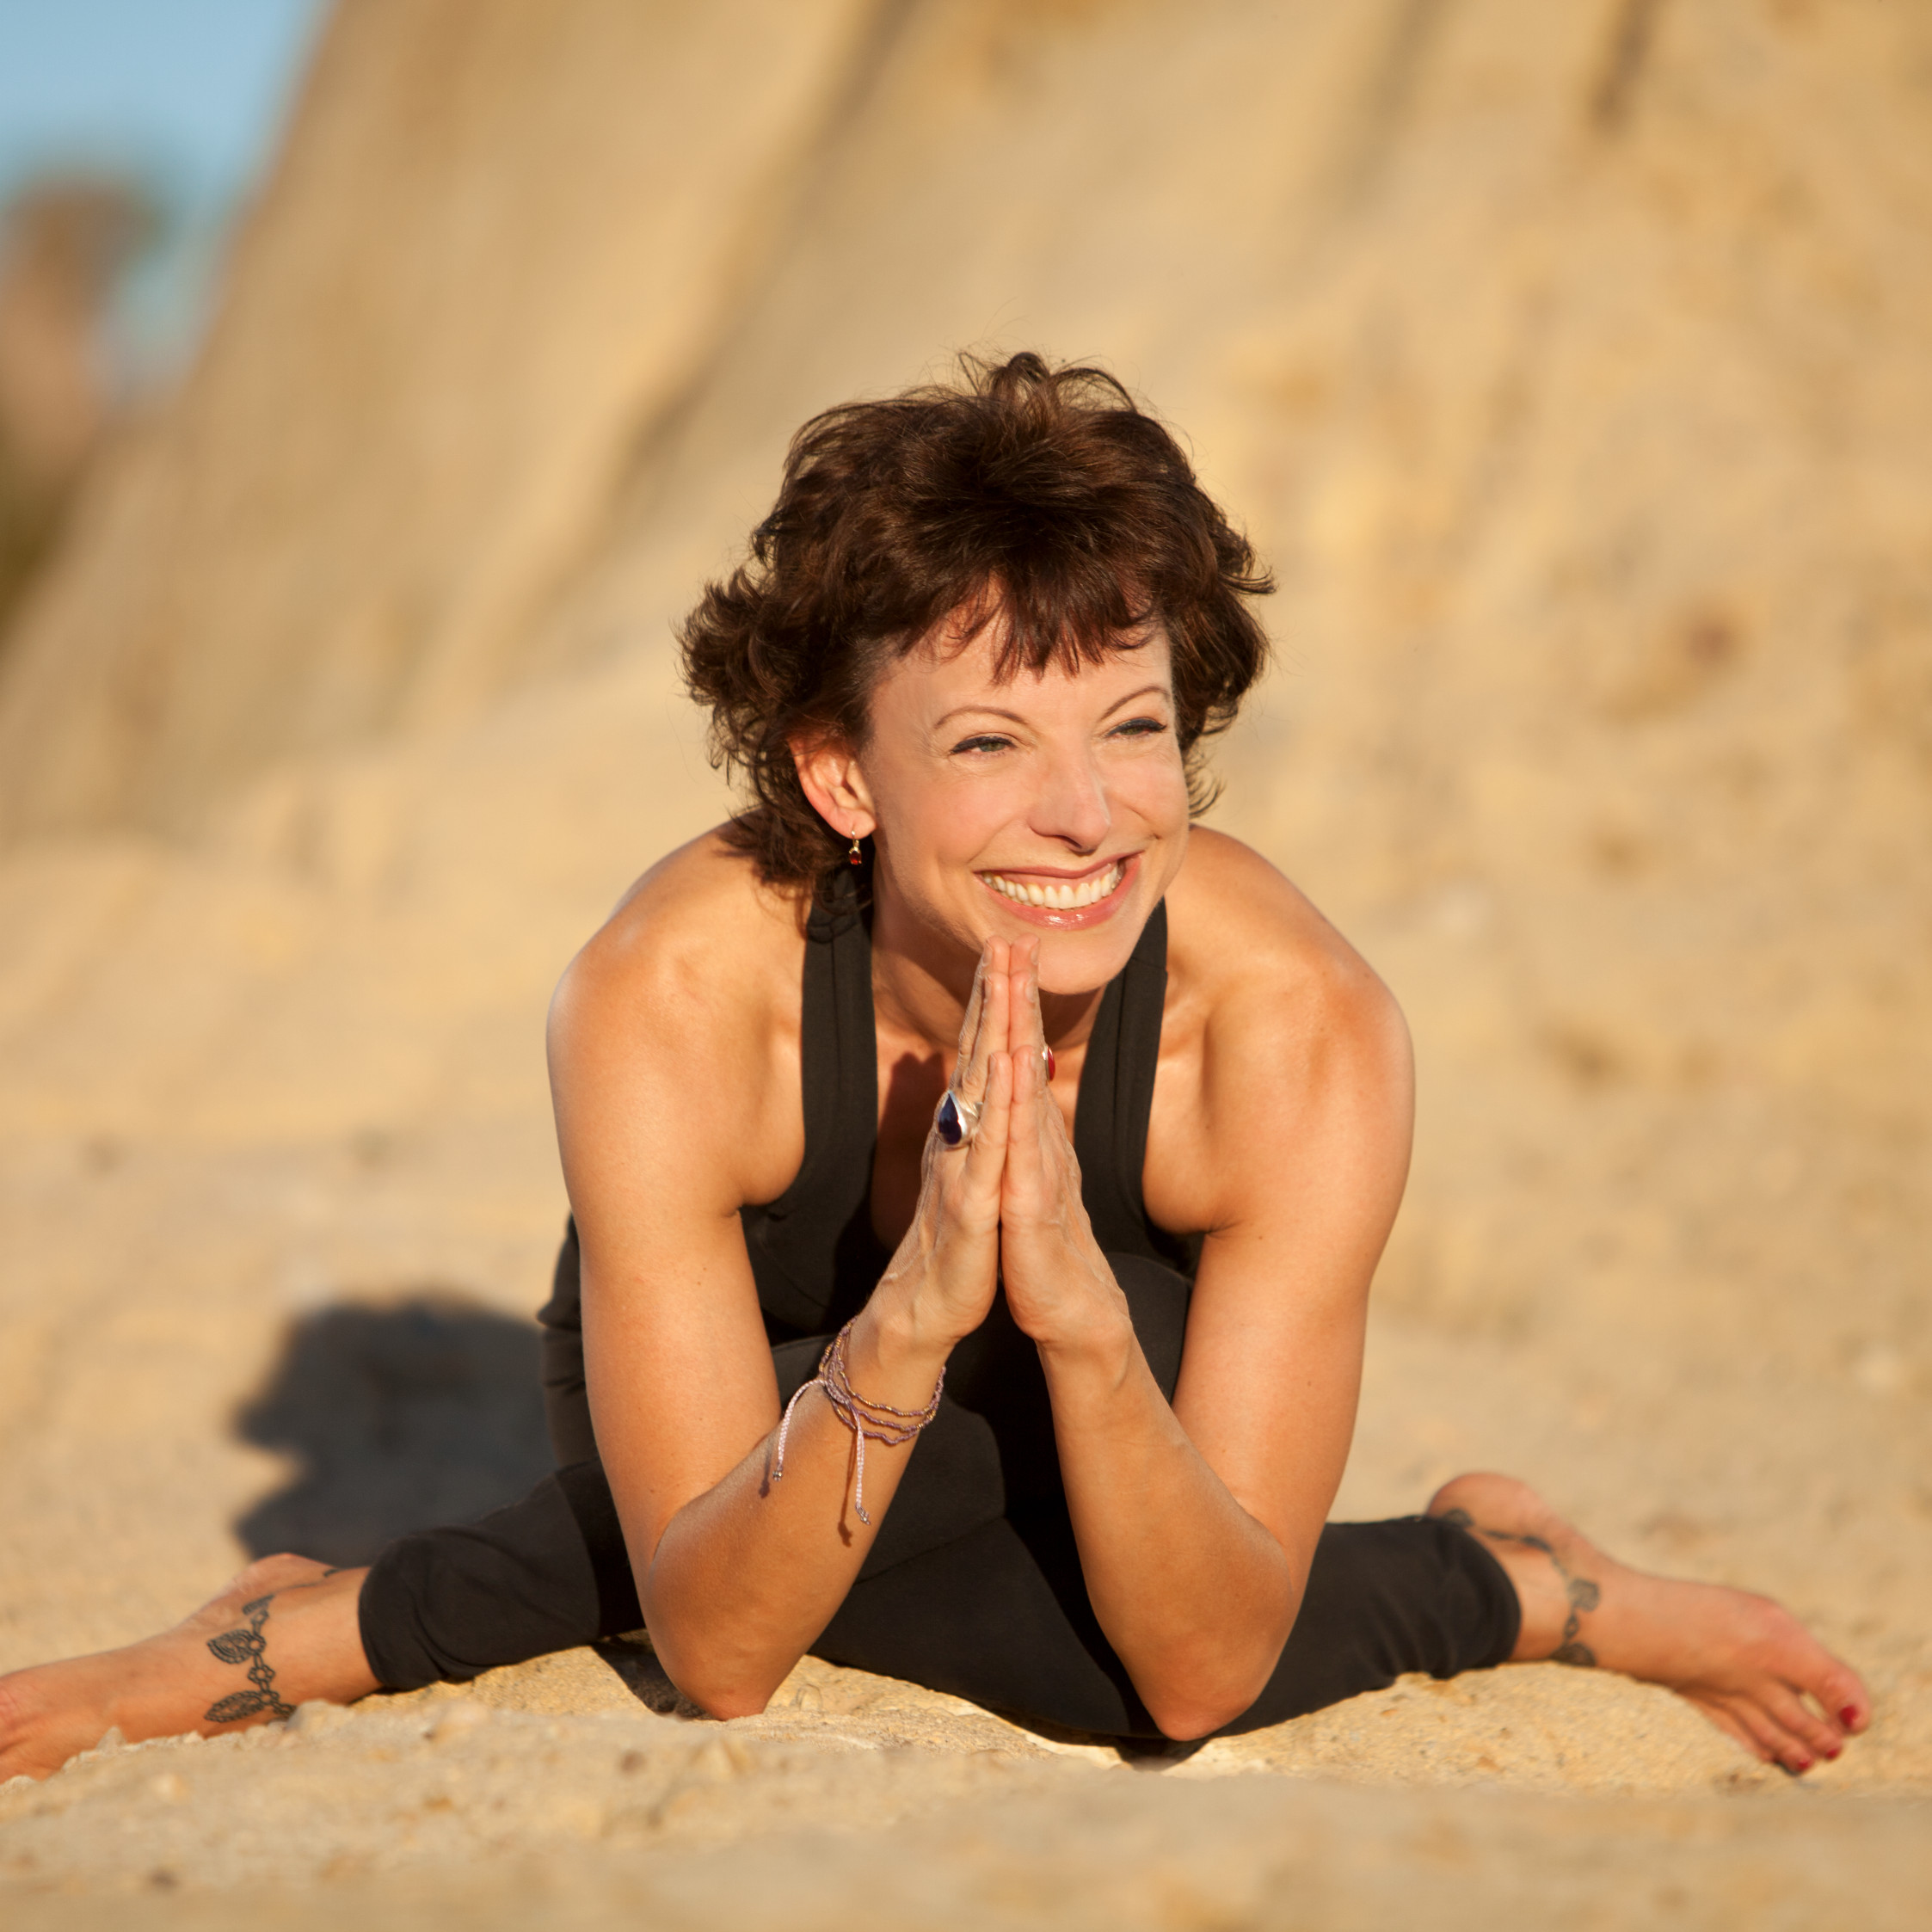 Jeanne Heileman Yoga Teacher and Instructor